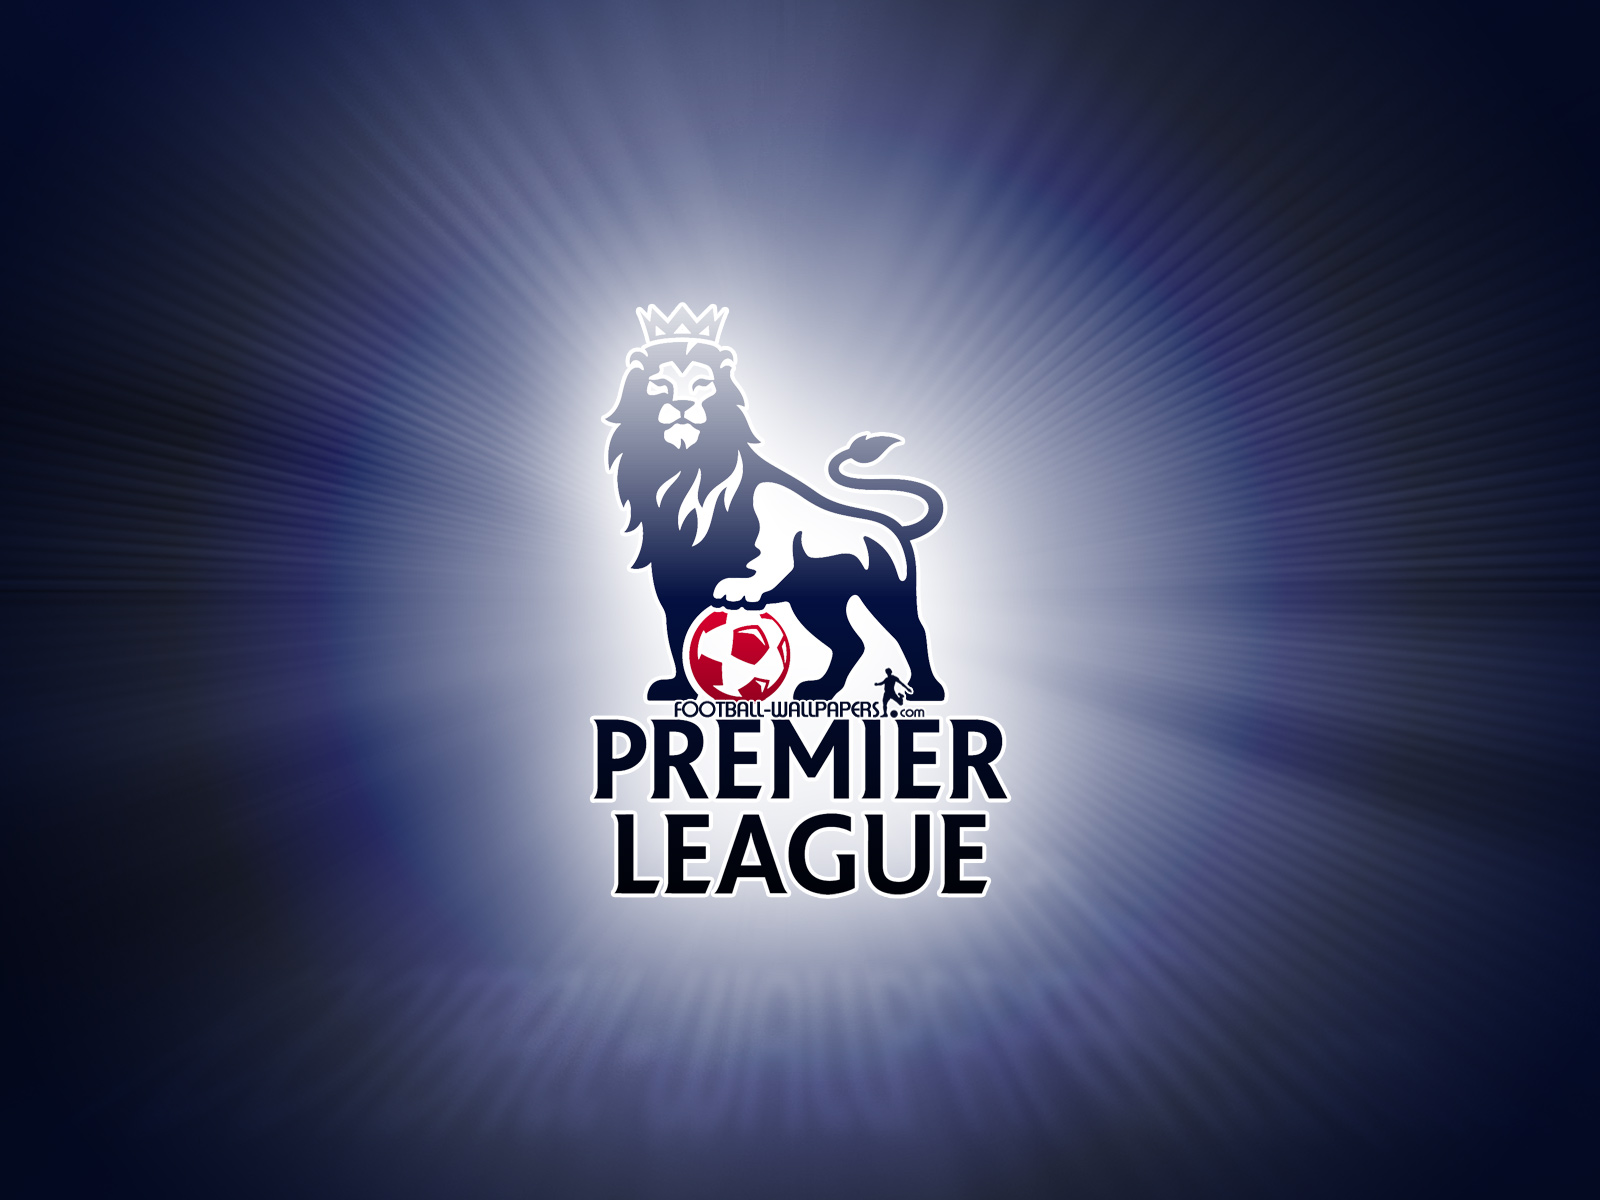 Premier league starts on saturday with liverpool vs stoke city fixture